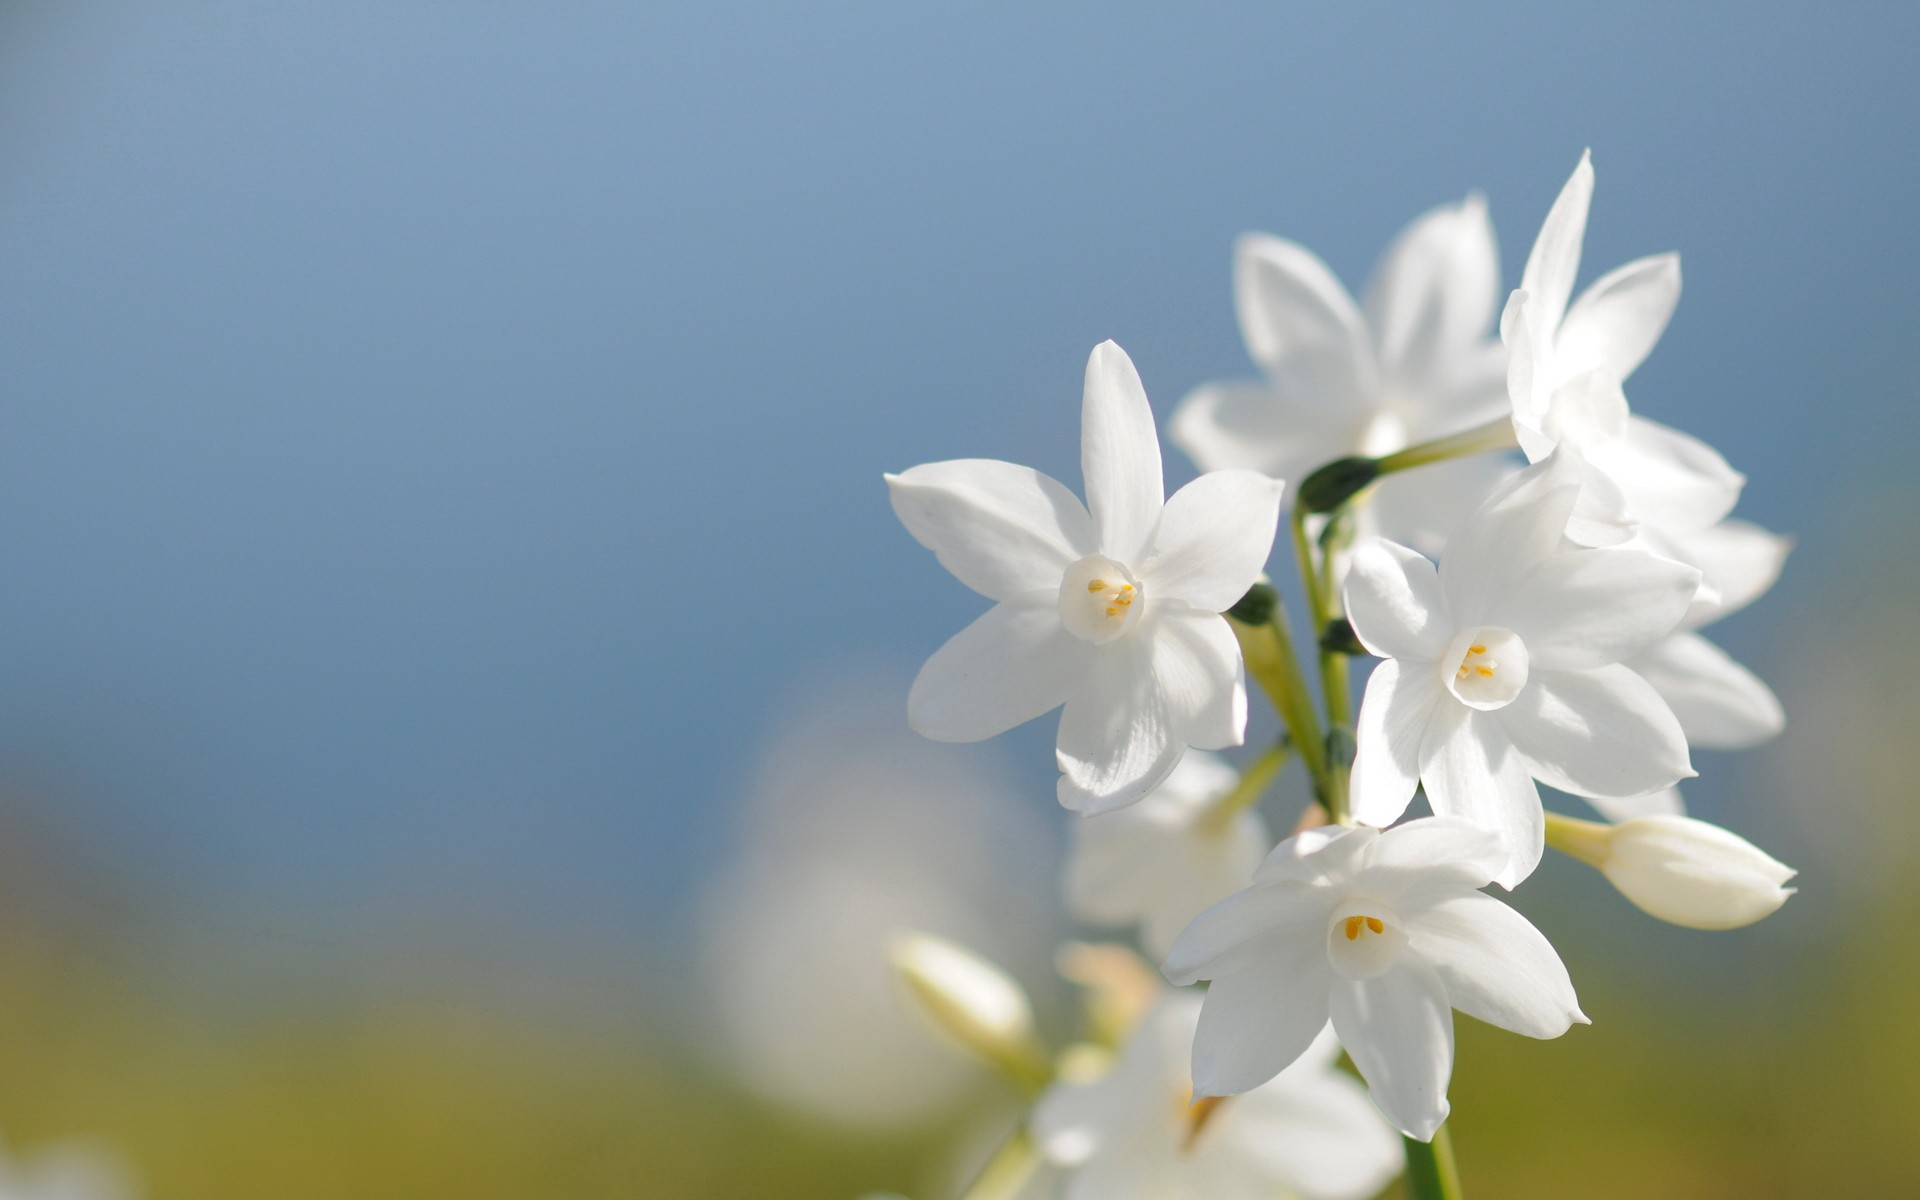 White flowers images savingourboysfo white flowers image wallpaper hd natural flower mightylinksfo